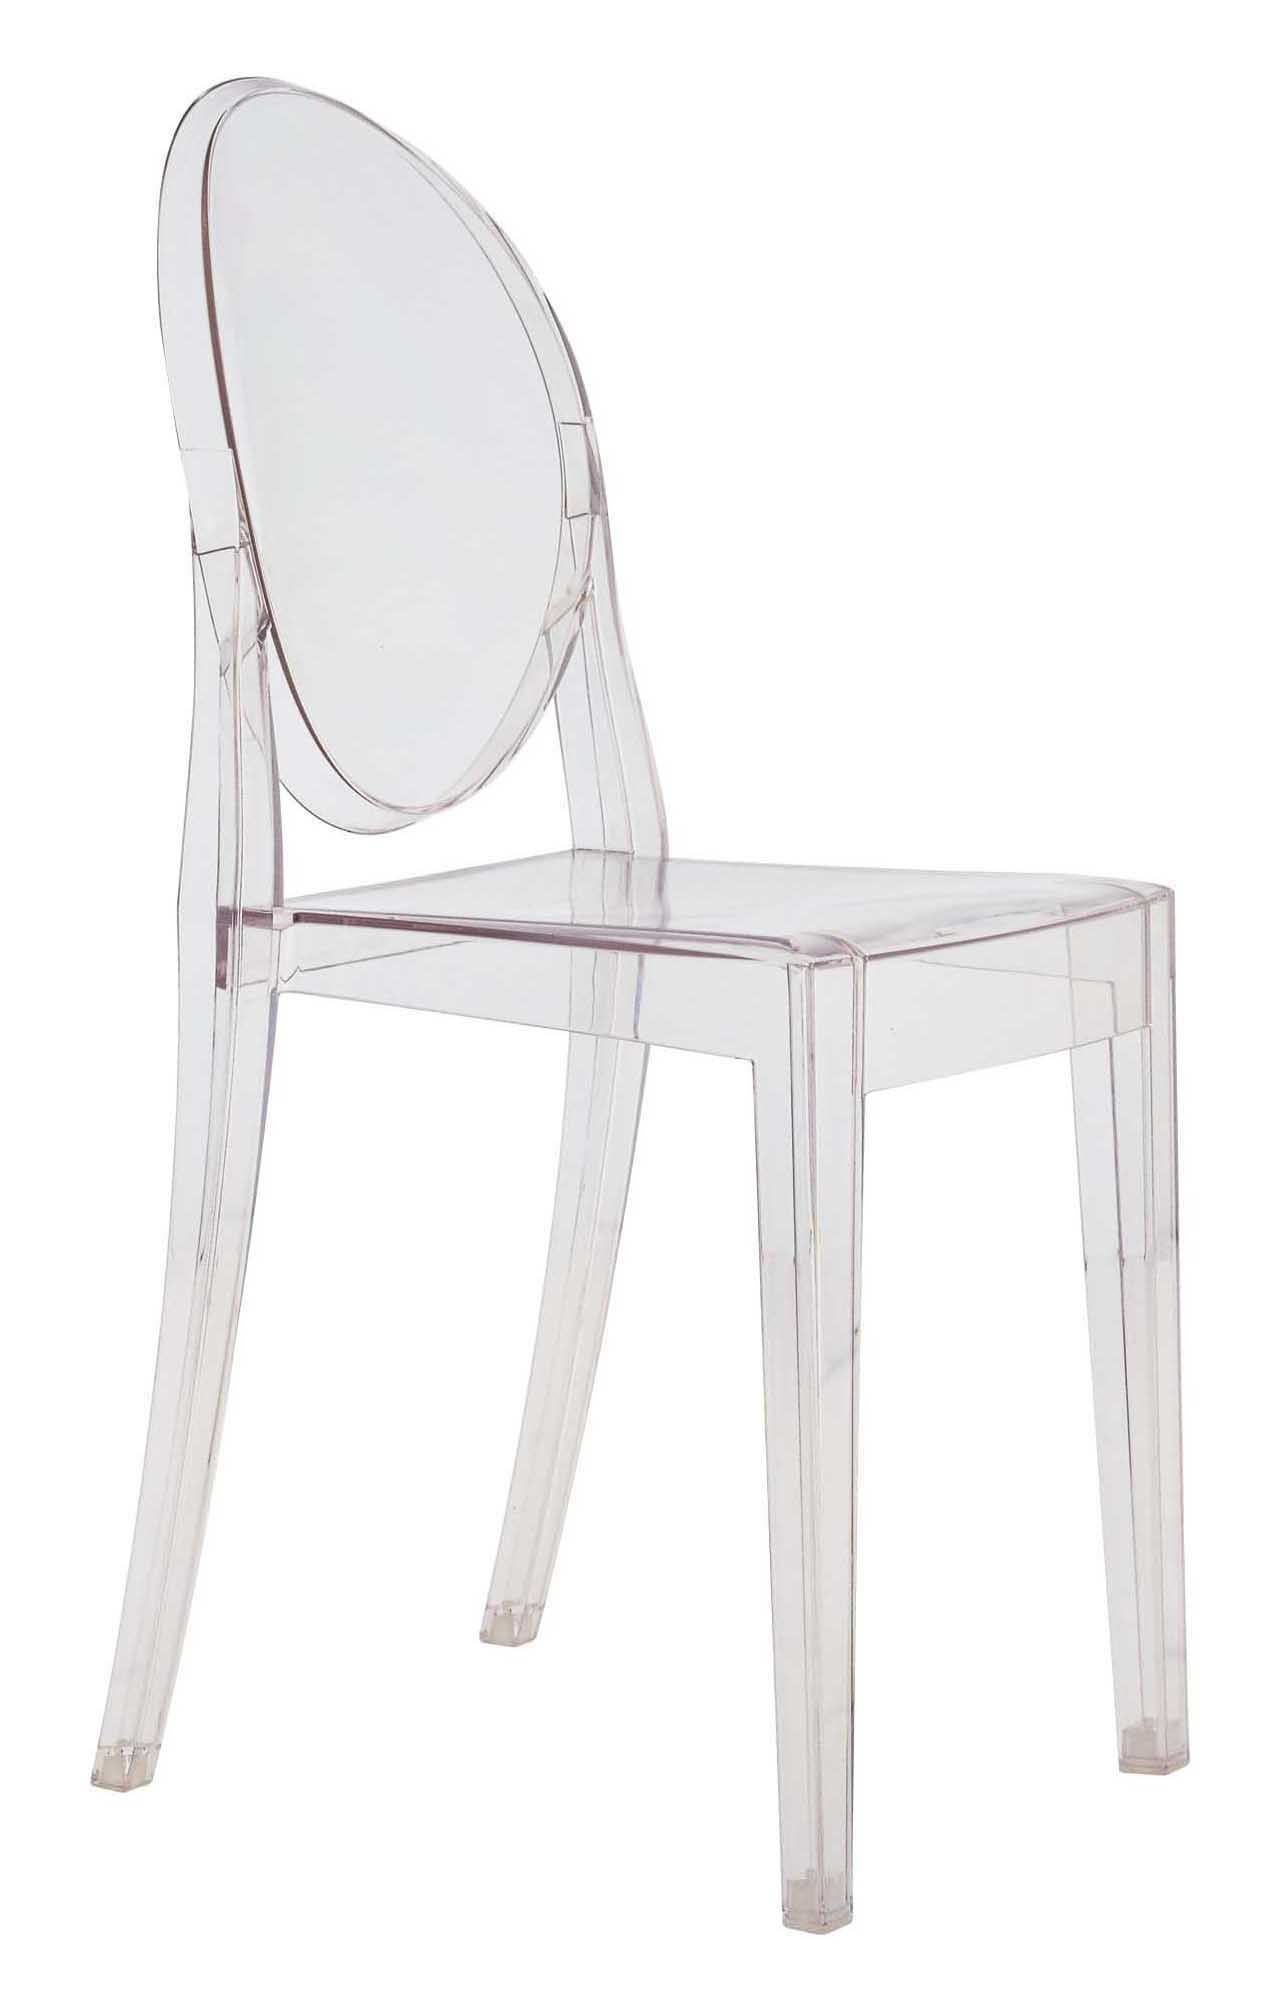 chaise empilable victoria ghost transparente polycarbonate cristal kartell. Black Bedroom Furniture Sets. Home Design Ideas